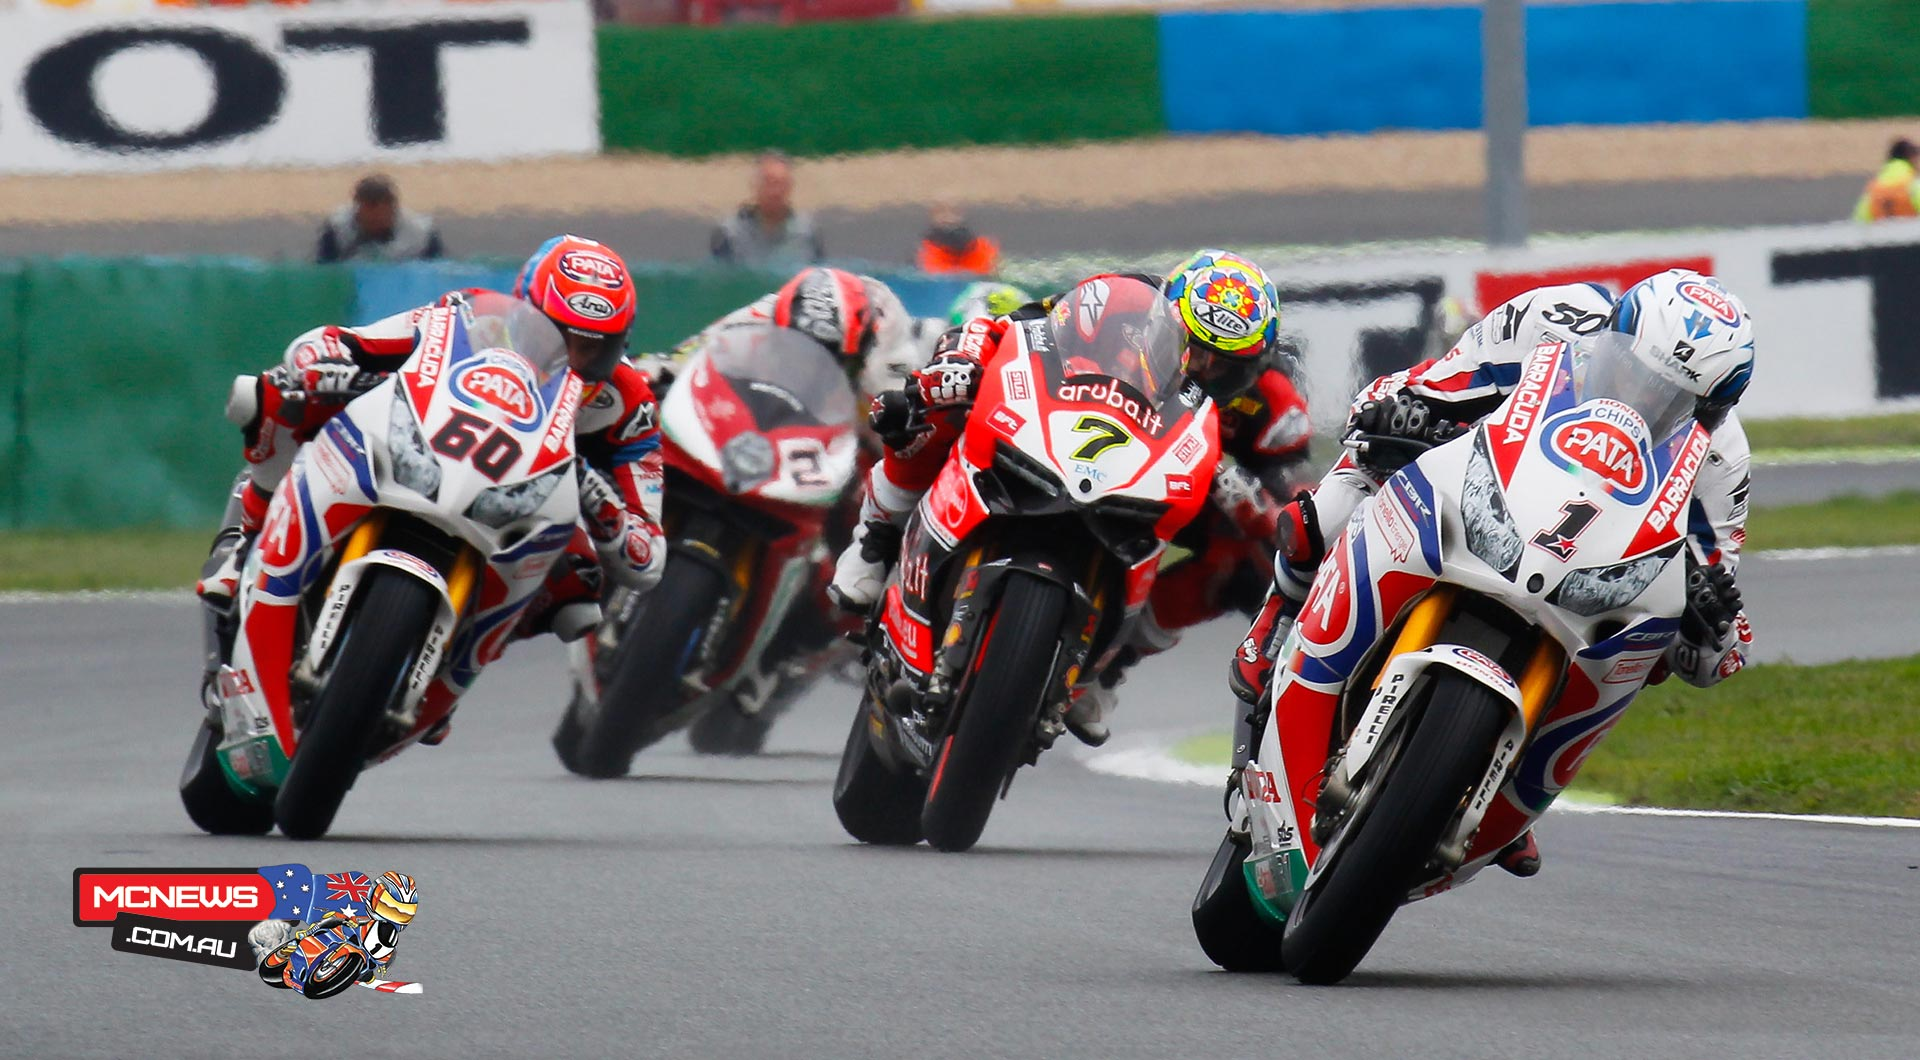 Sylvain Guintoli leads Chaz Davies at Magny Cours in 2015